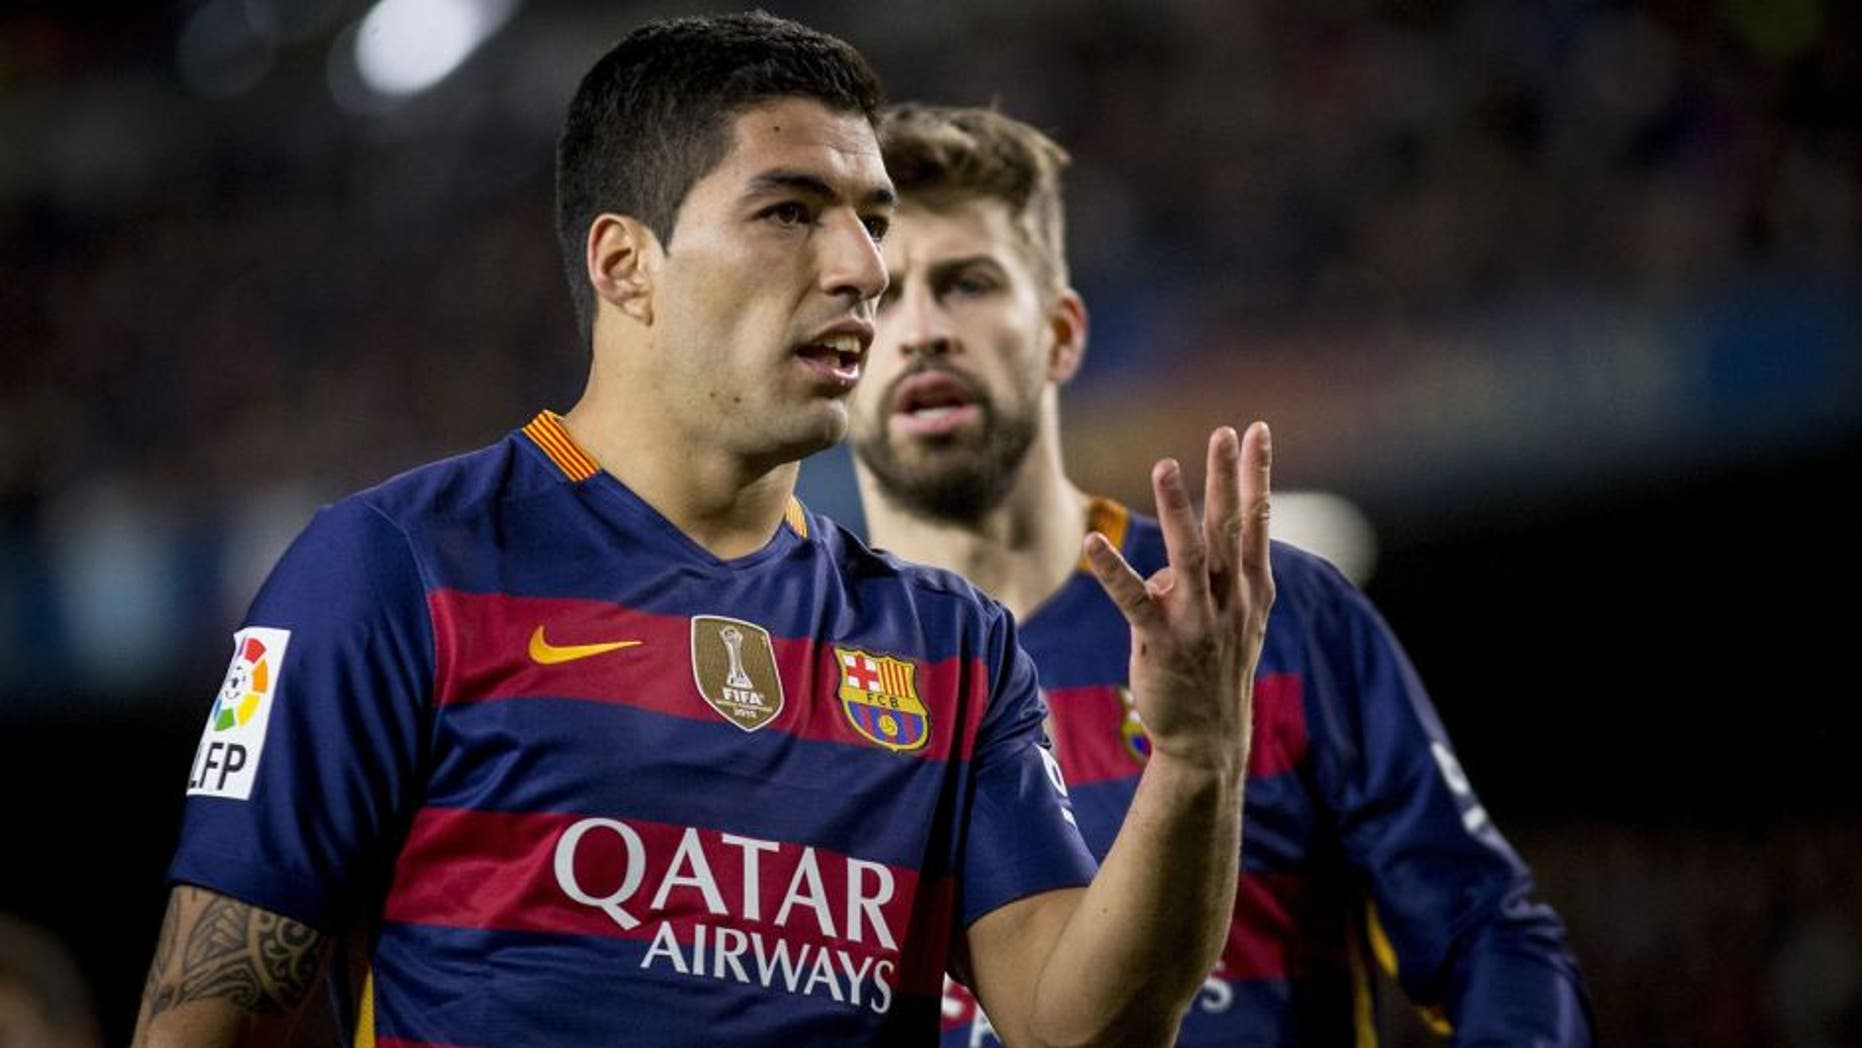 BARCELONA, SPAIN - JANUARY 6 : Barcelona's Luis Suarez gestures during the Spanish Copa del Rey (King's Cup) round of 16 first leg football match between FC Barcelona vs RCD Espanyol at the Camp Nou stadium in Barcelona on January 6, 2016. (Photo by Albert Llop/Anadolu Agency/Getty Images)